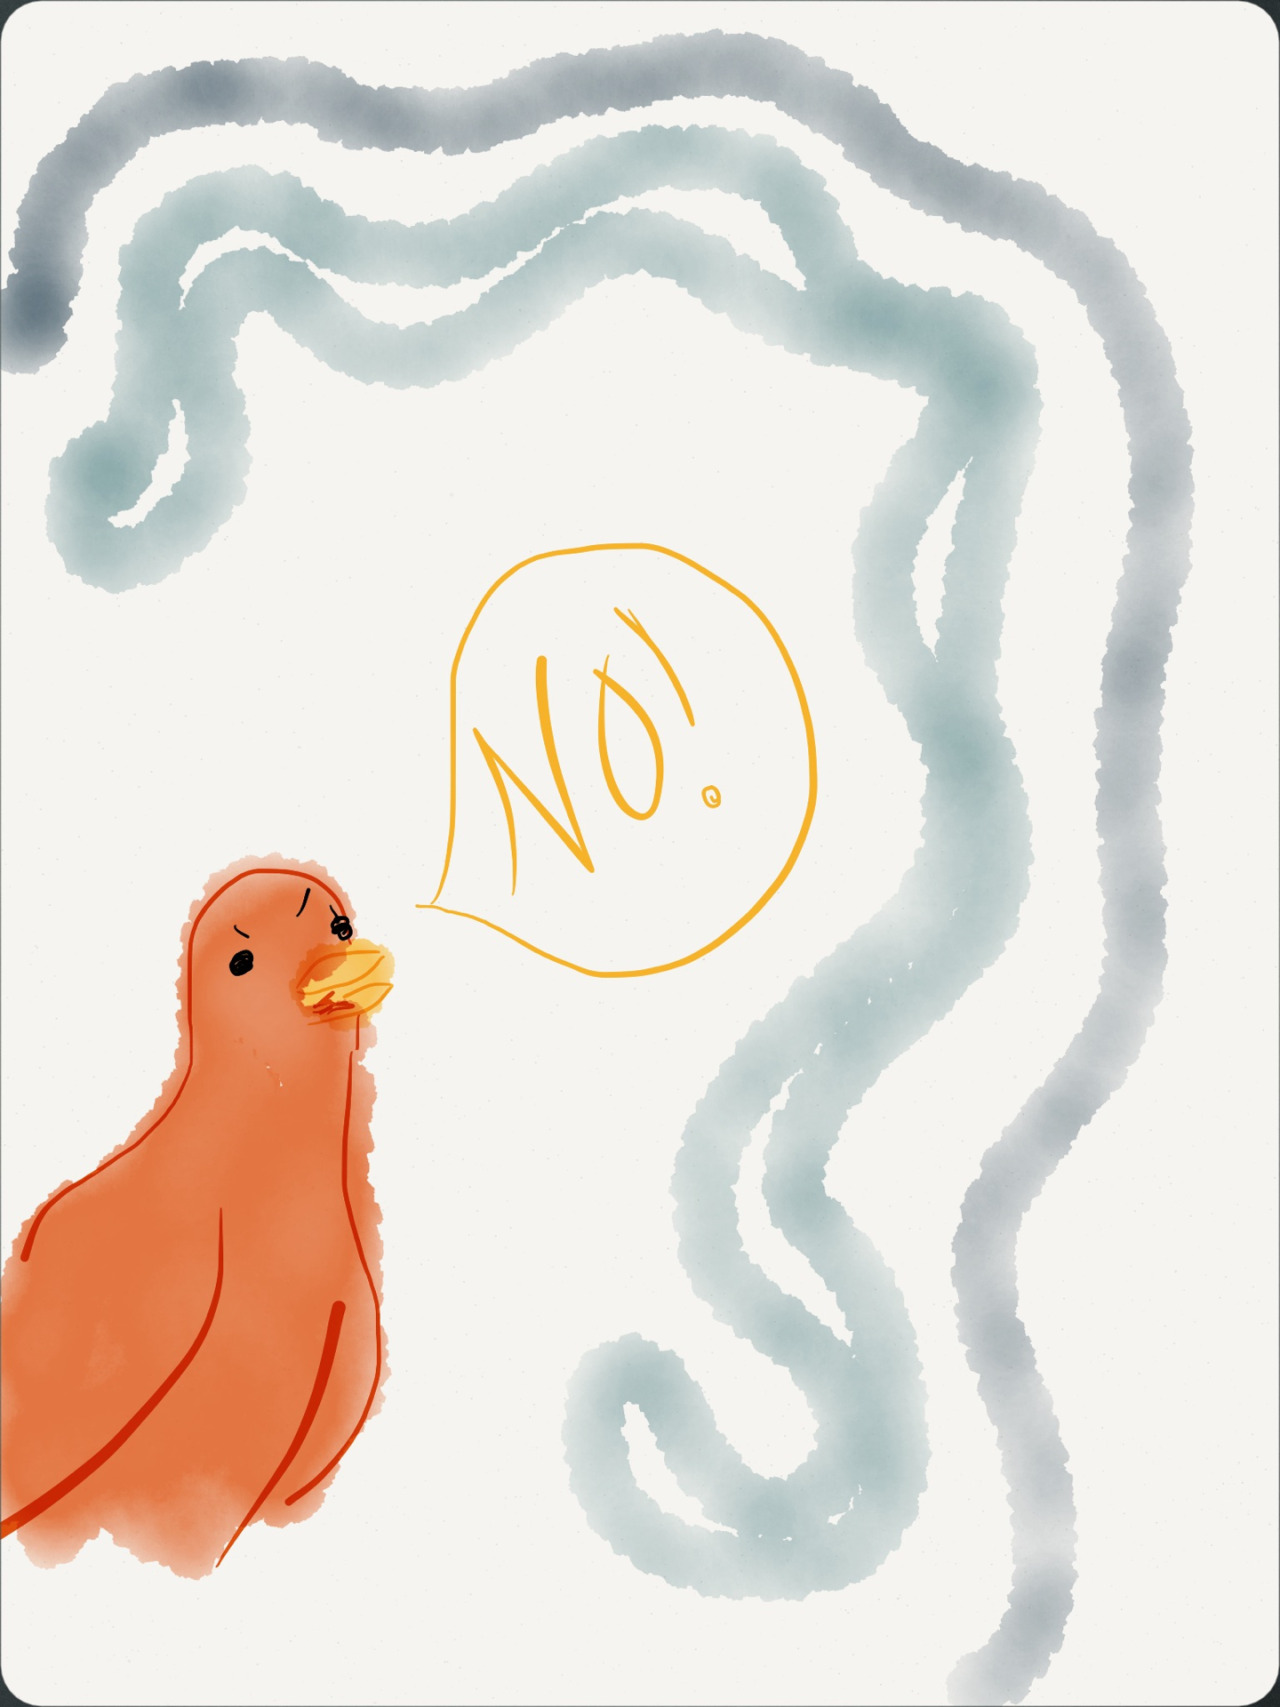 I drew this because I'm angry at my noisy upstairs neighbor.